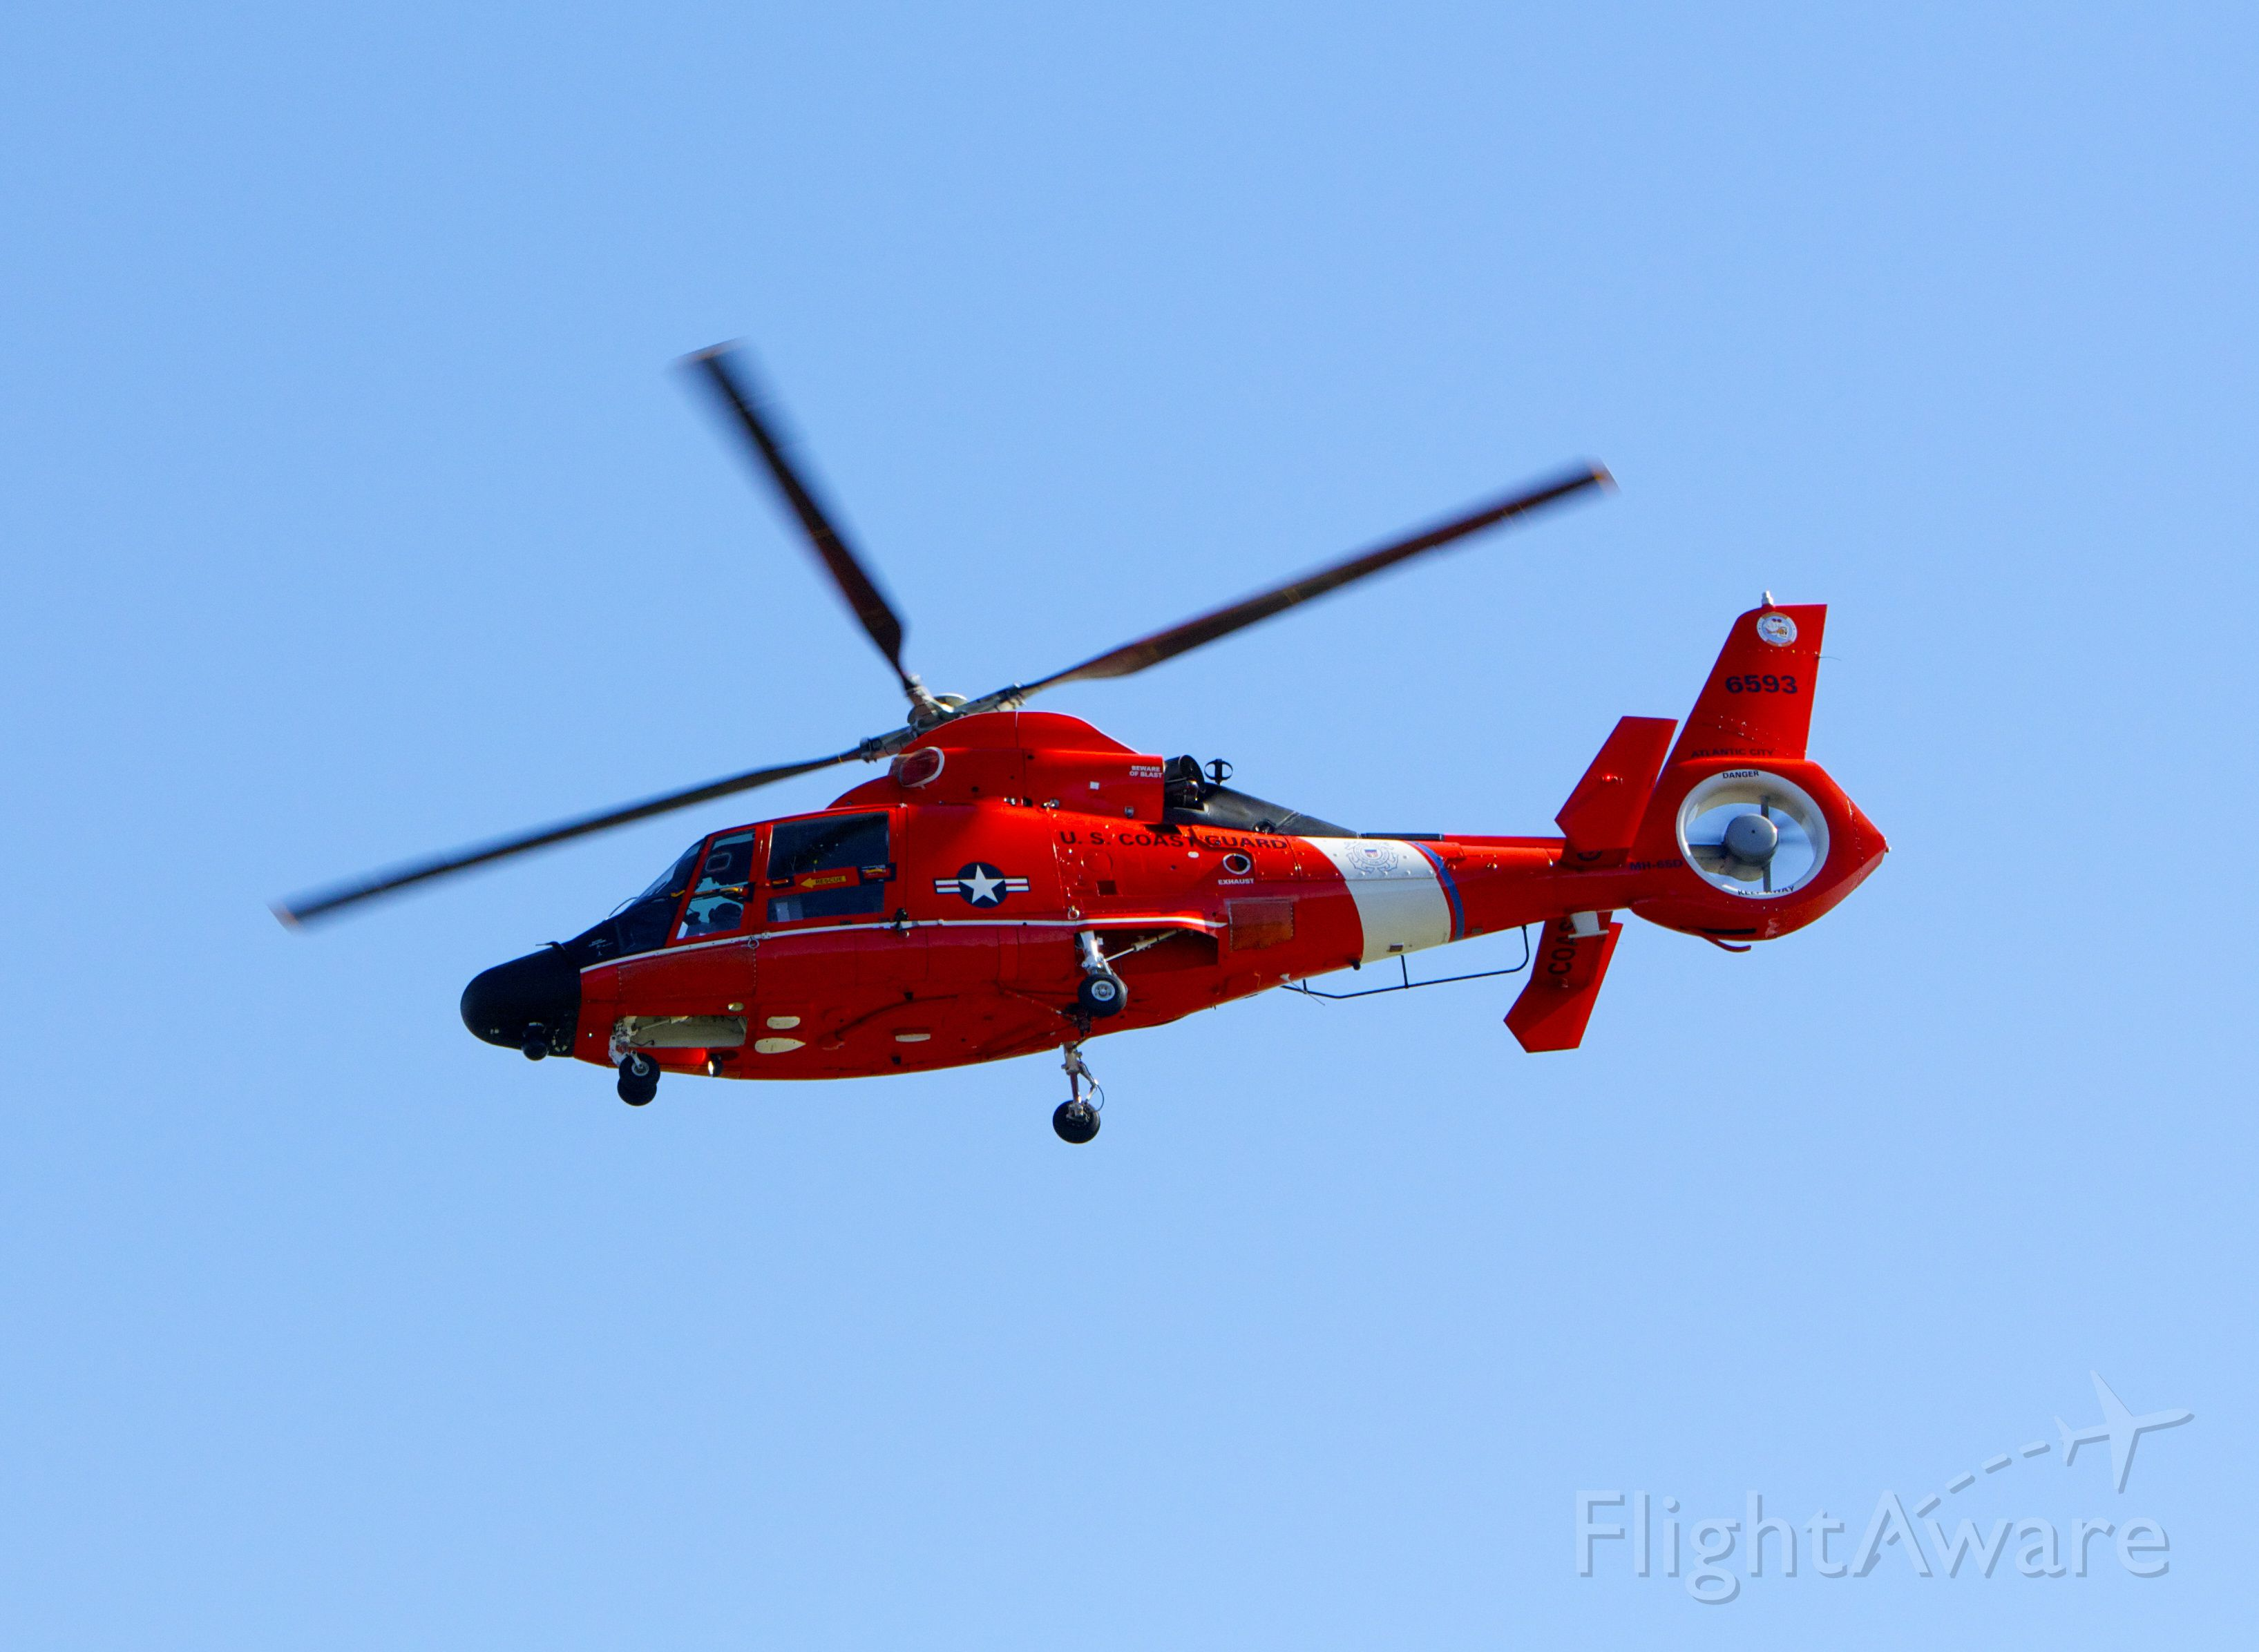 — — - United States Coast Guard from Reagan National